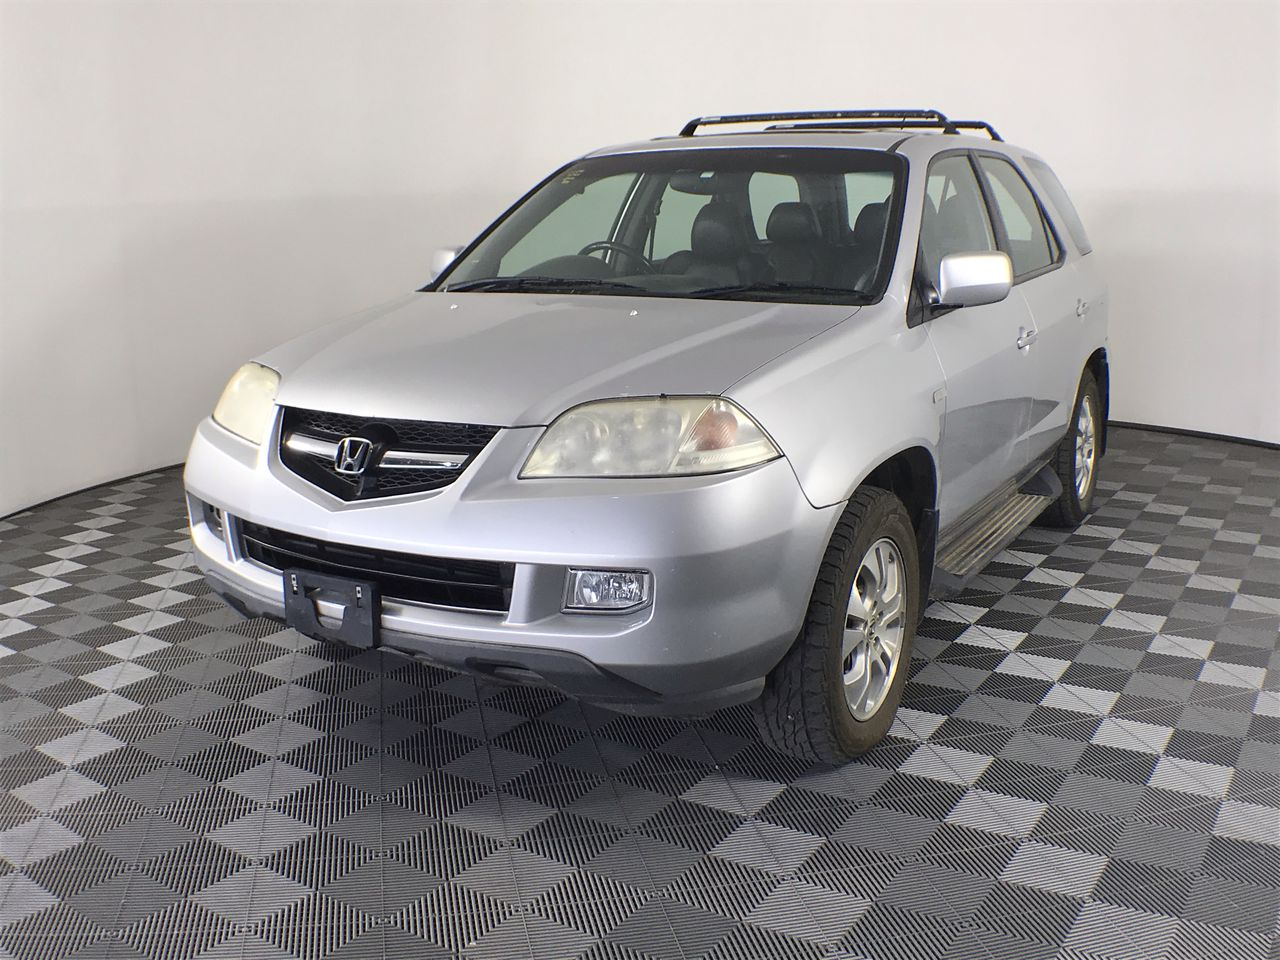 2005 Honda MDX Automatic 7 Seats Wagon